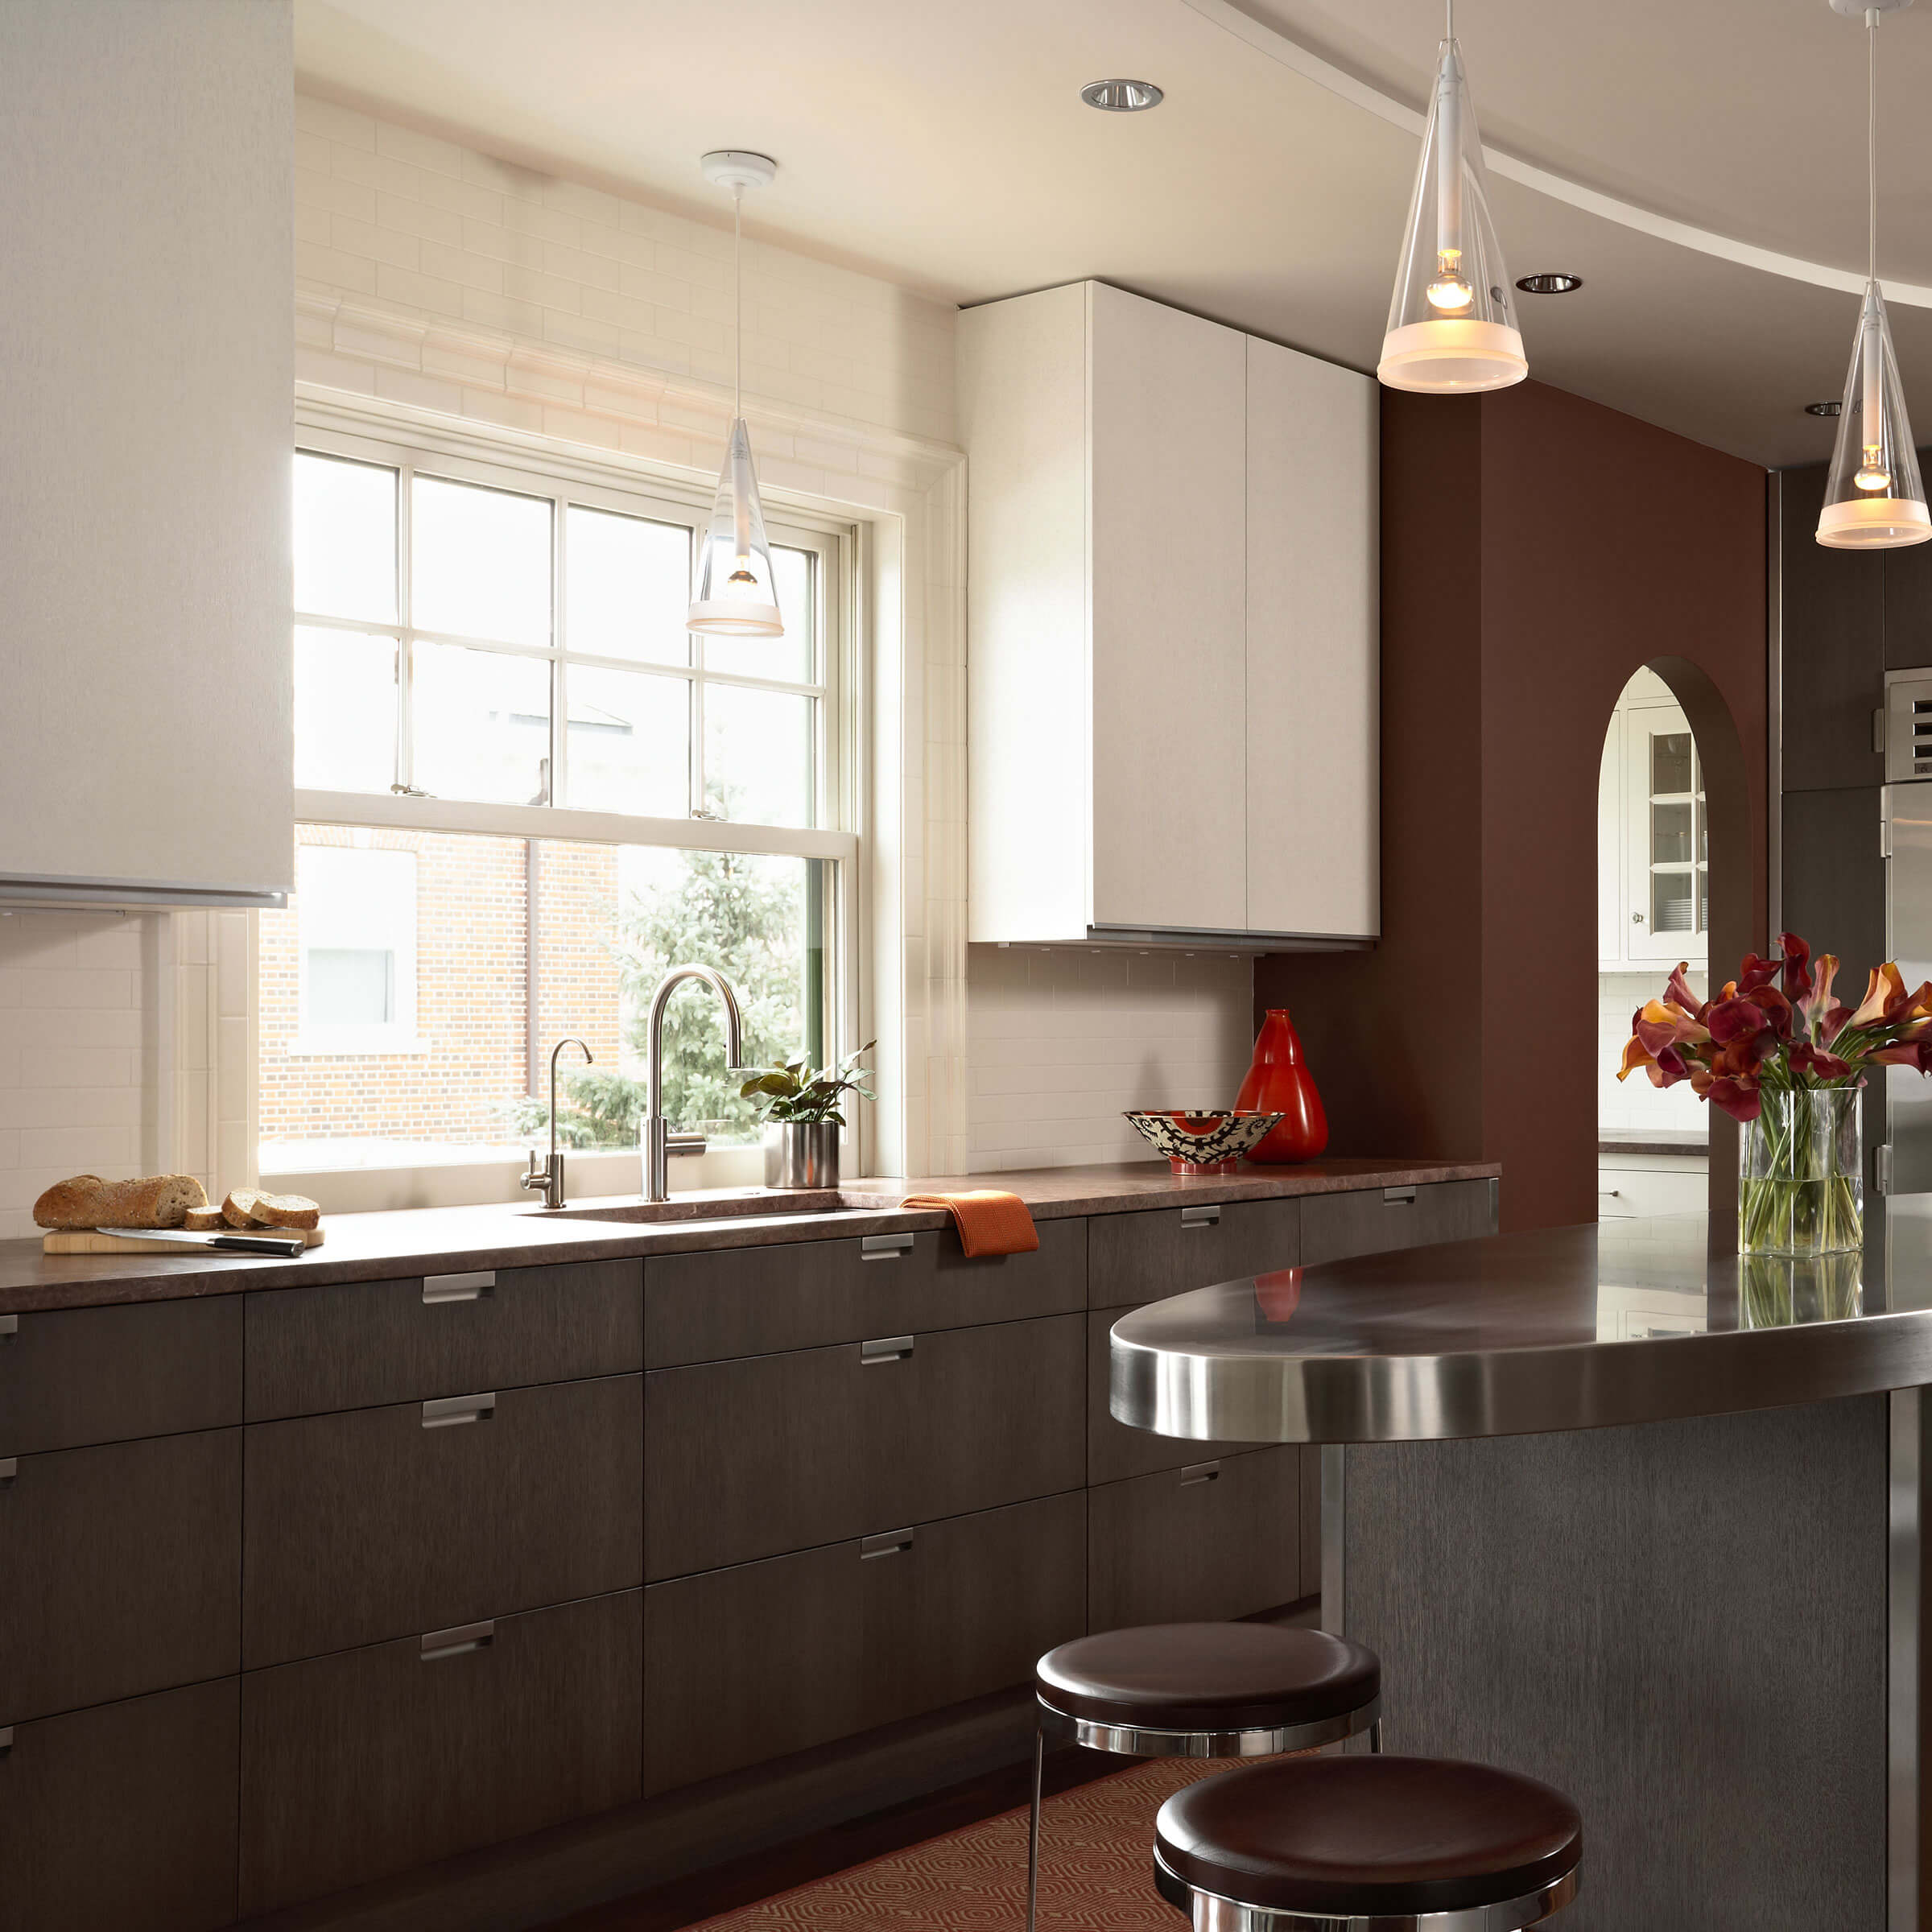 Large Kitchen With Ultimate Windows